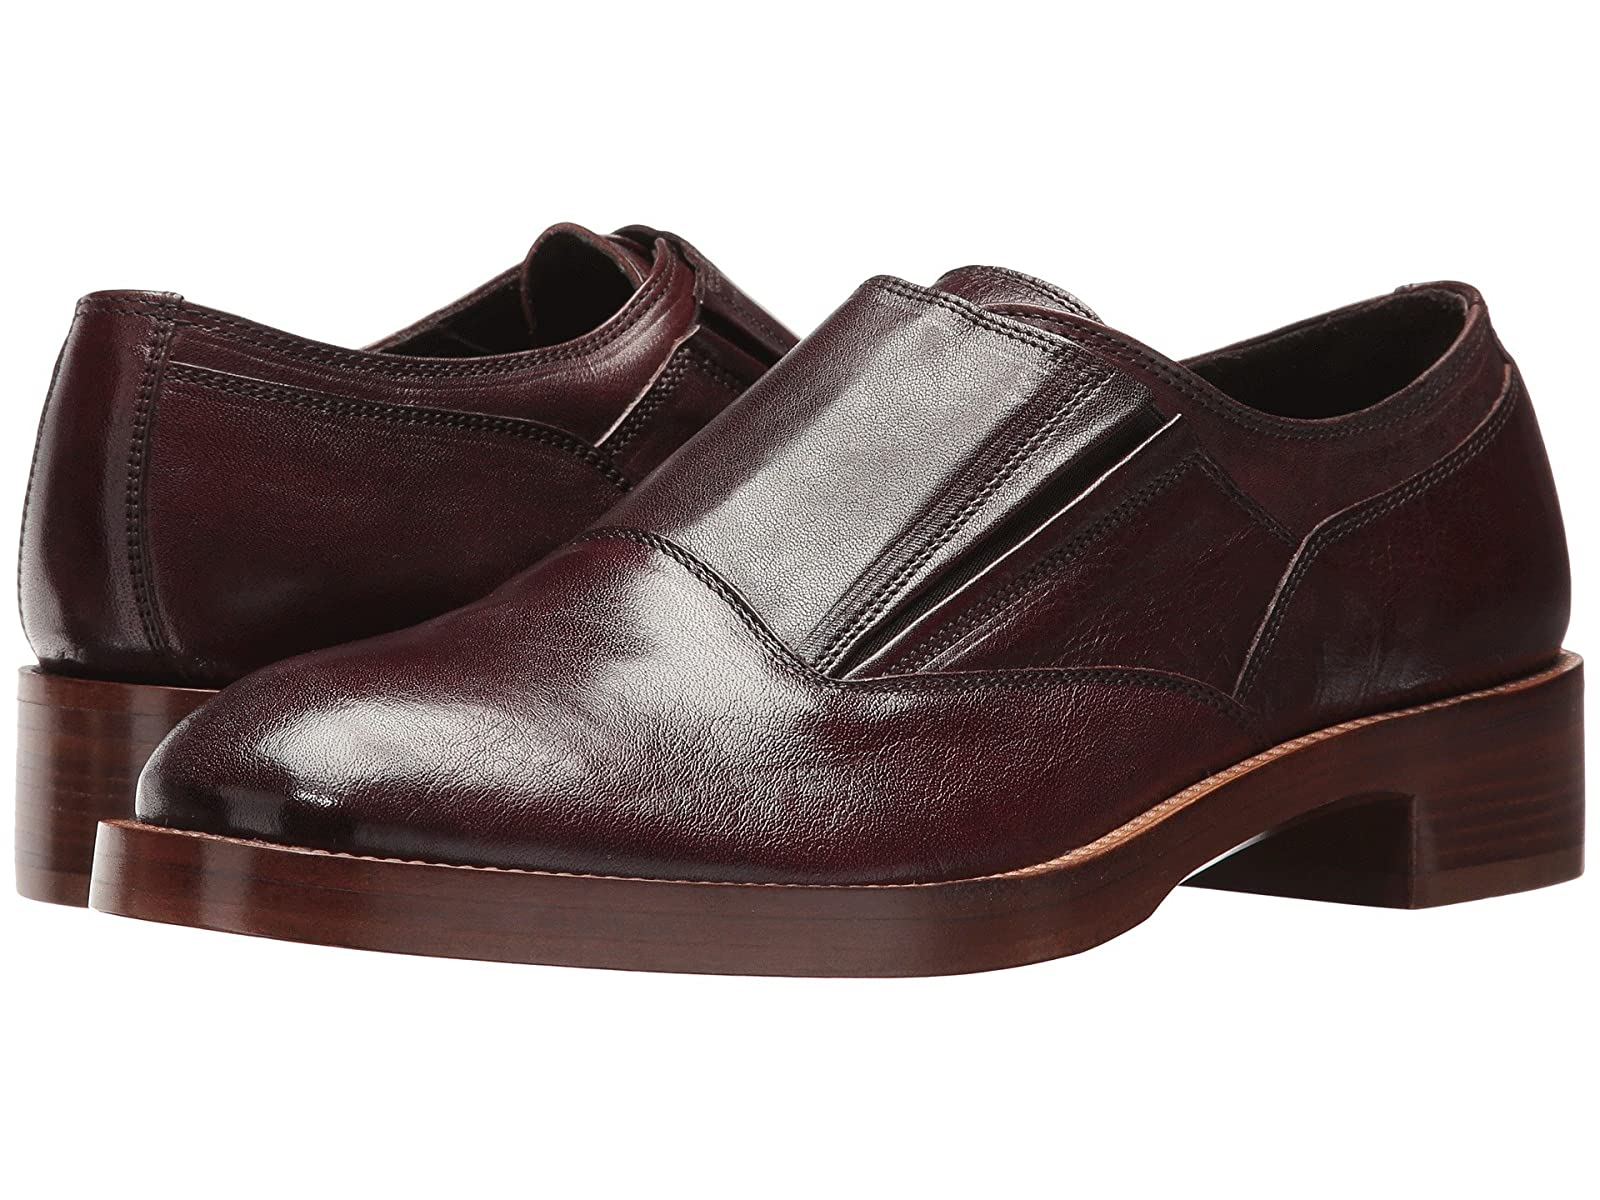 Donald J Pliner Gildo-5XCheap and distinctive eye-catching shoes